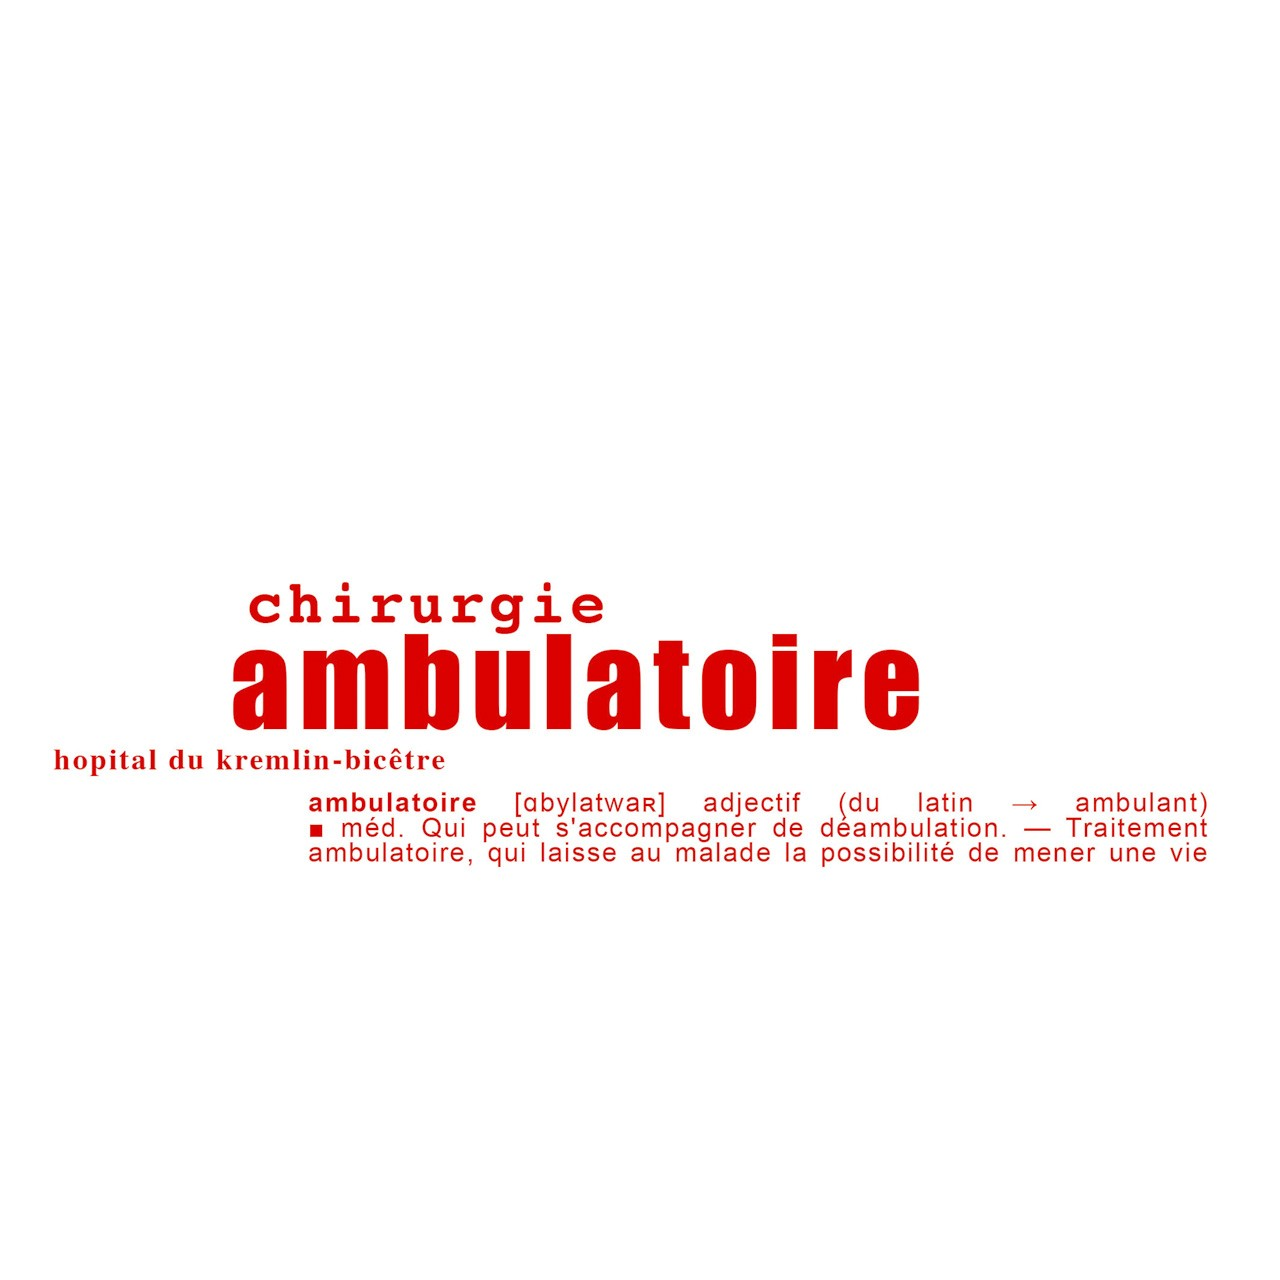 03_MEDICAL_LOUBATON_chir_ambulatoireL1280